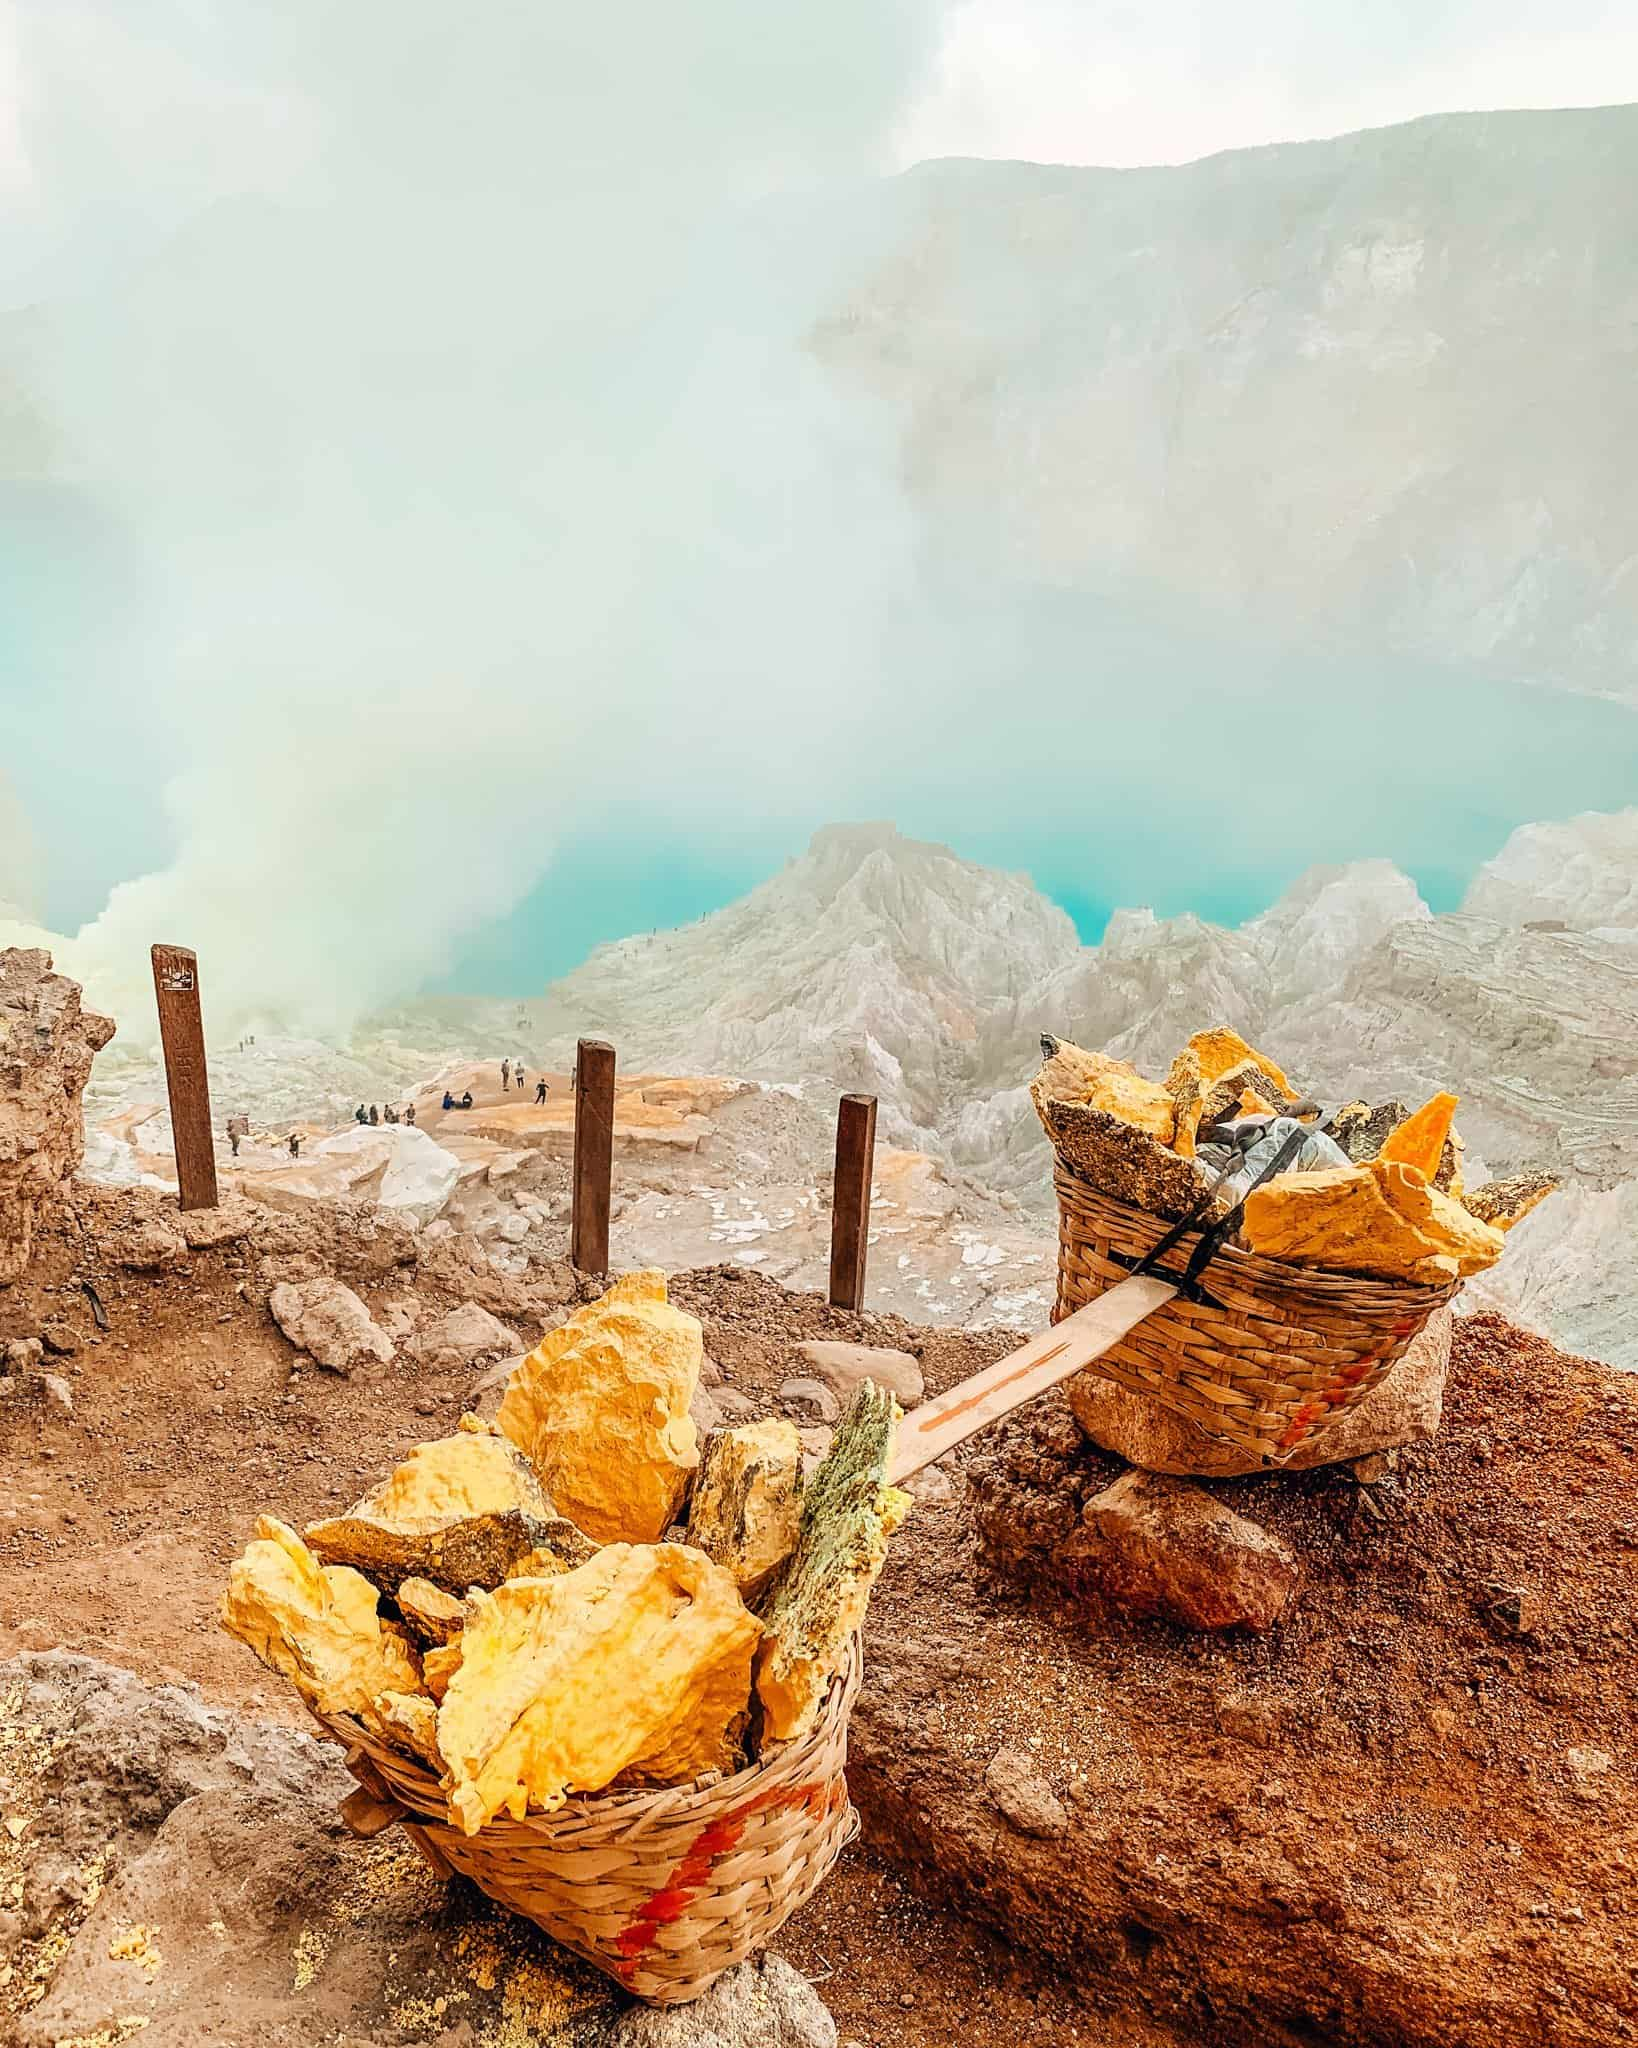 Sulfur Pieces from Mount Ijen, East Java - The Next Trip